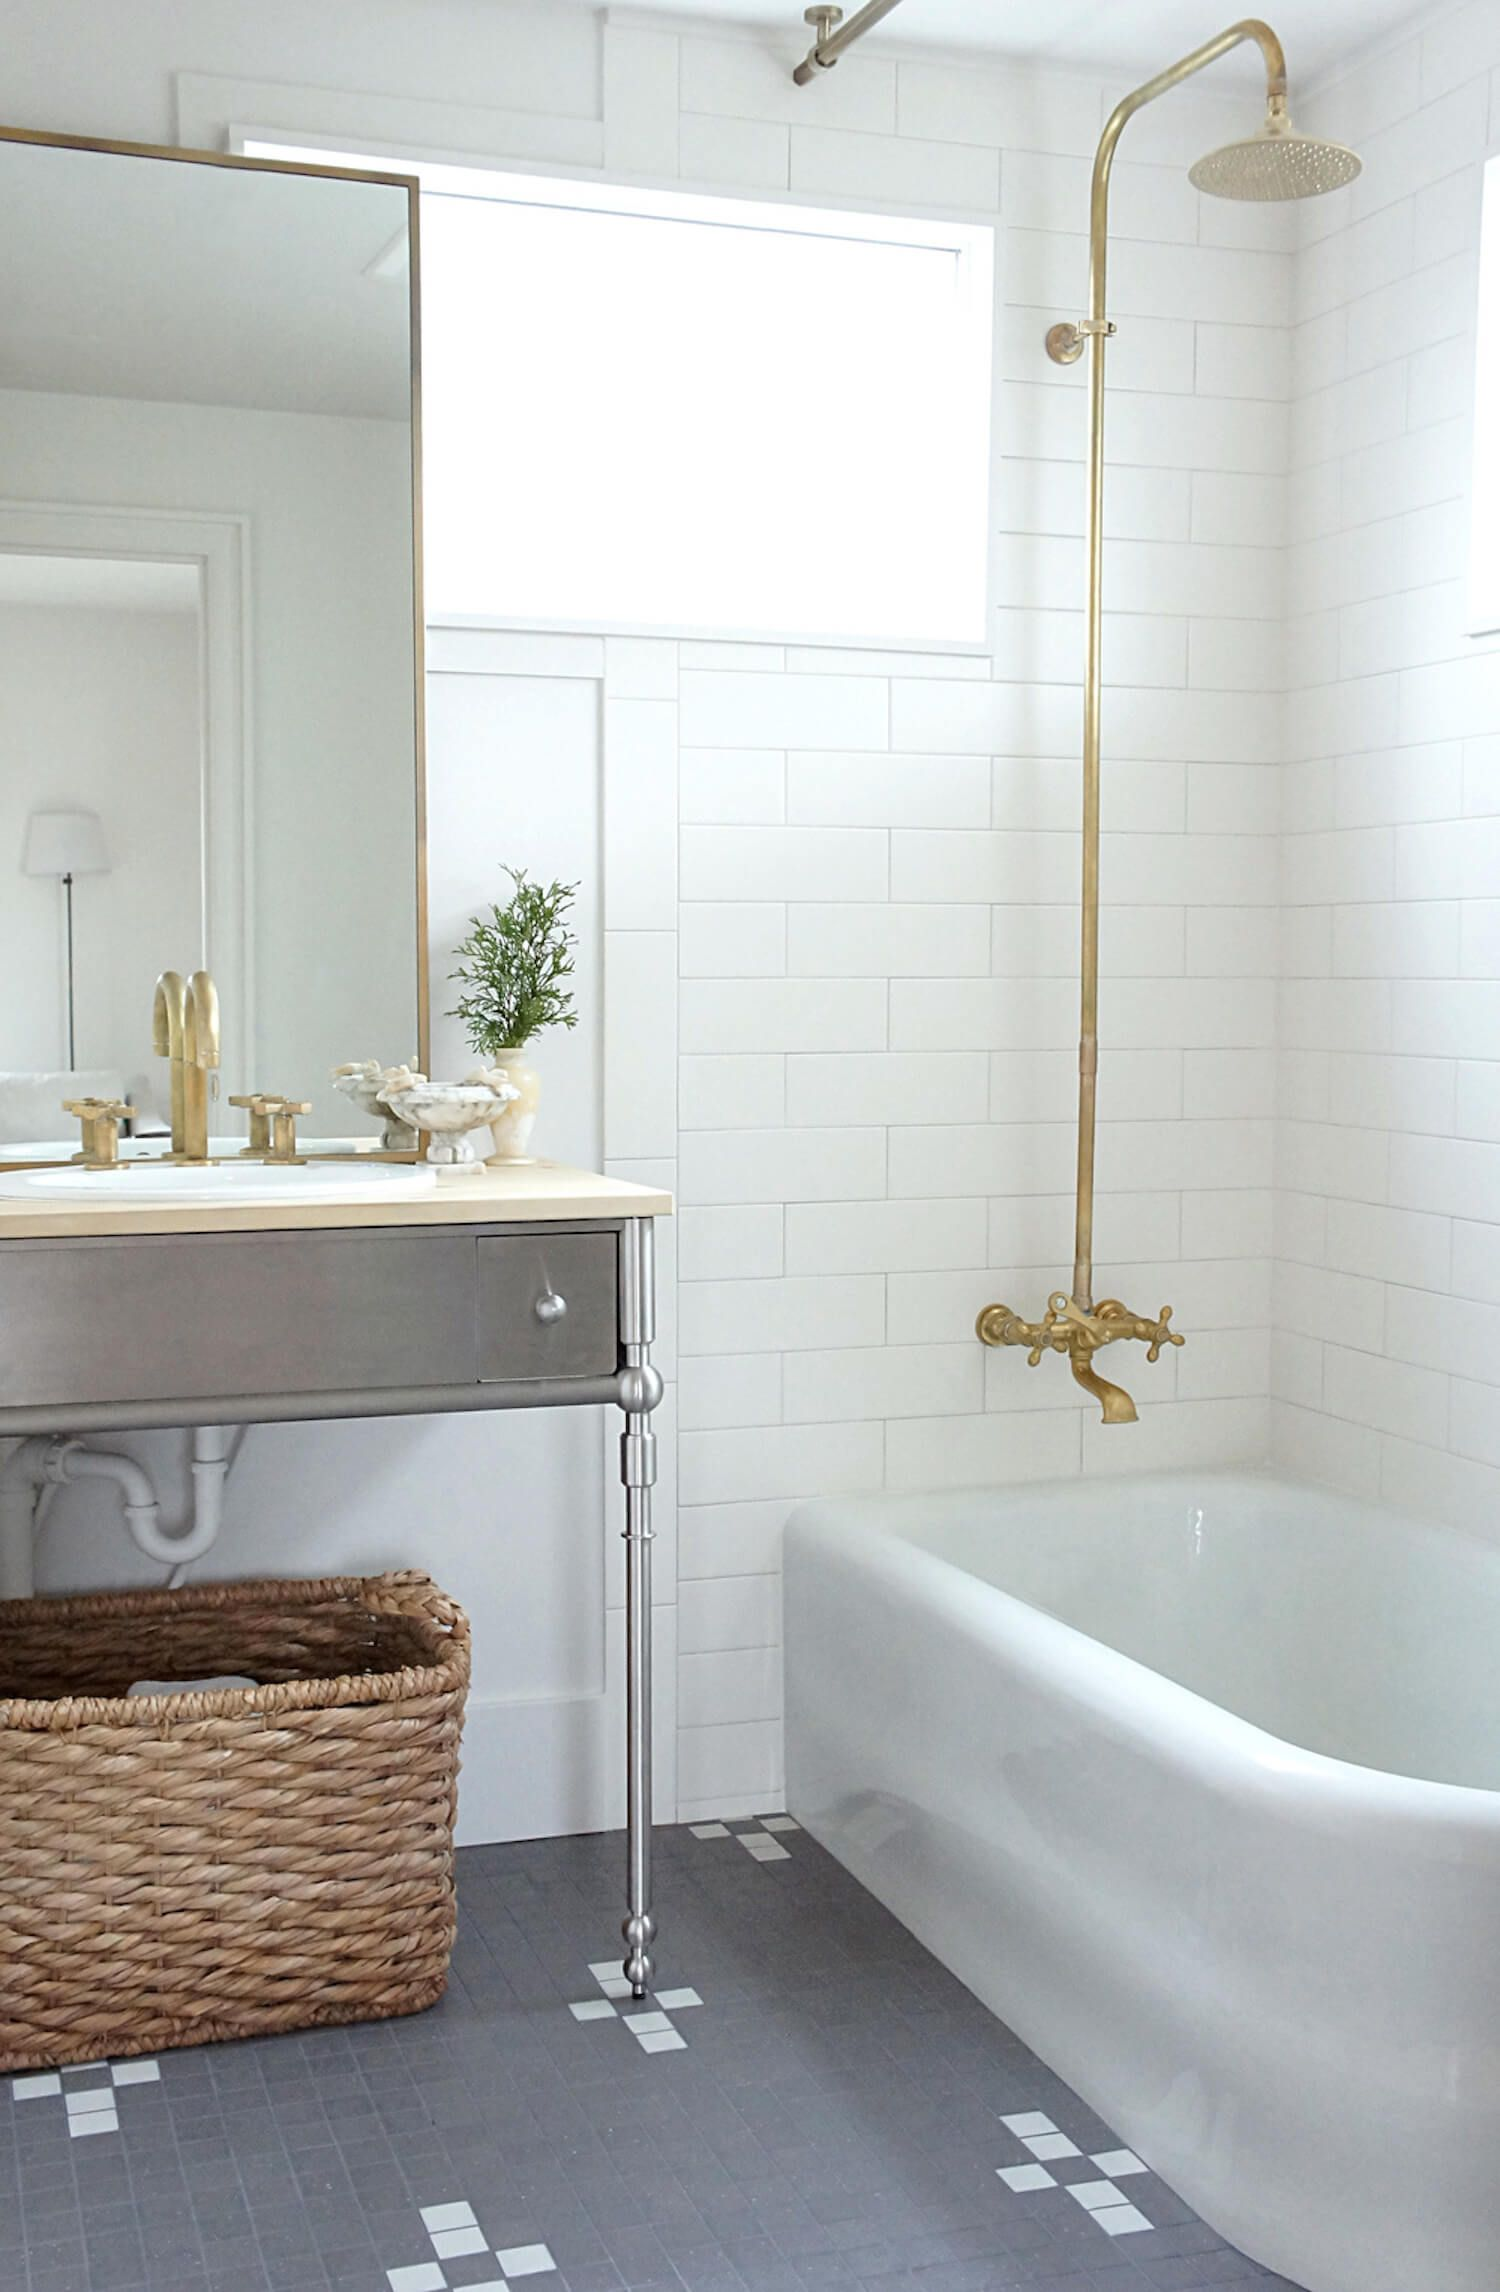 This Tile Trick Is a Game-Changer for Budget Bathrooms | New House ...